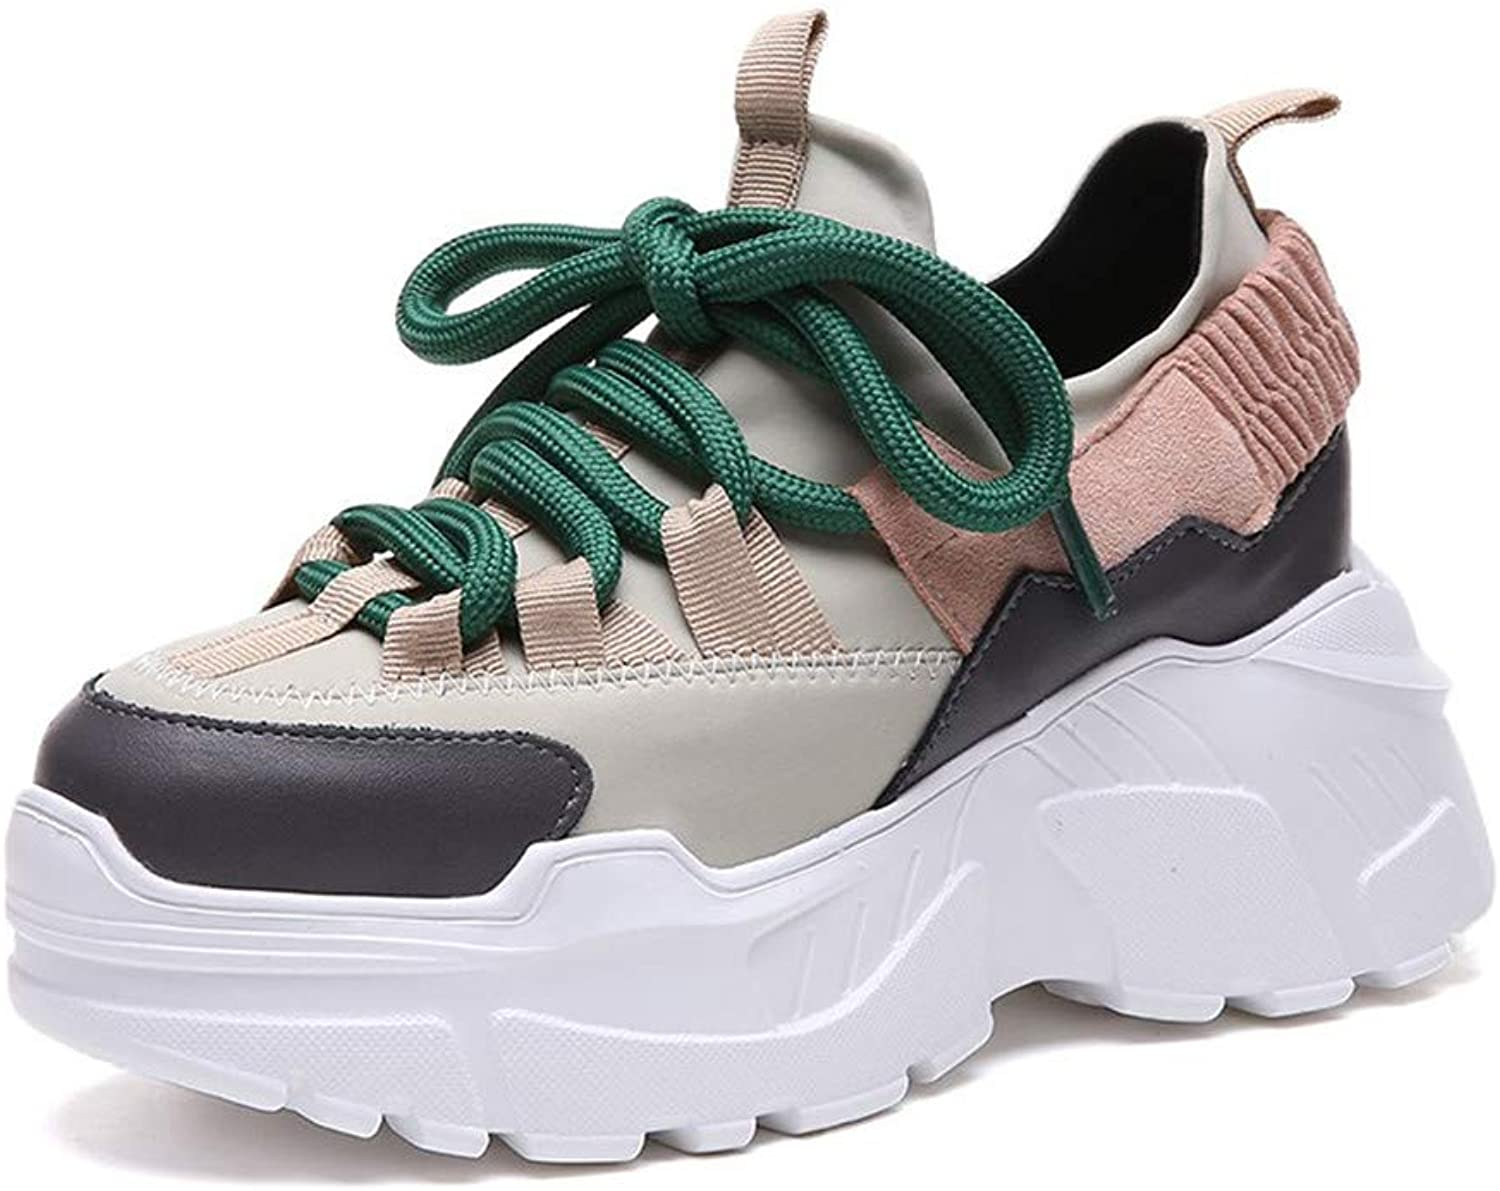 New Fall Winter Platform Sneakers Women Height Increasing 7 cm shoes Size 35-42